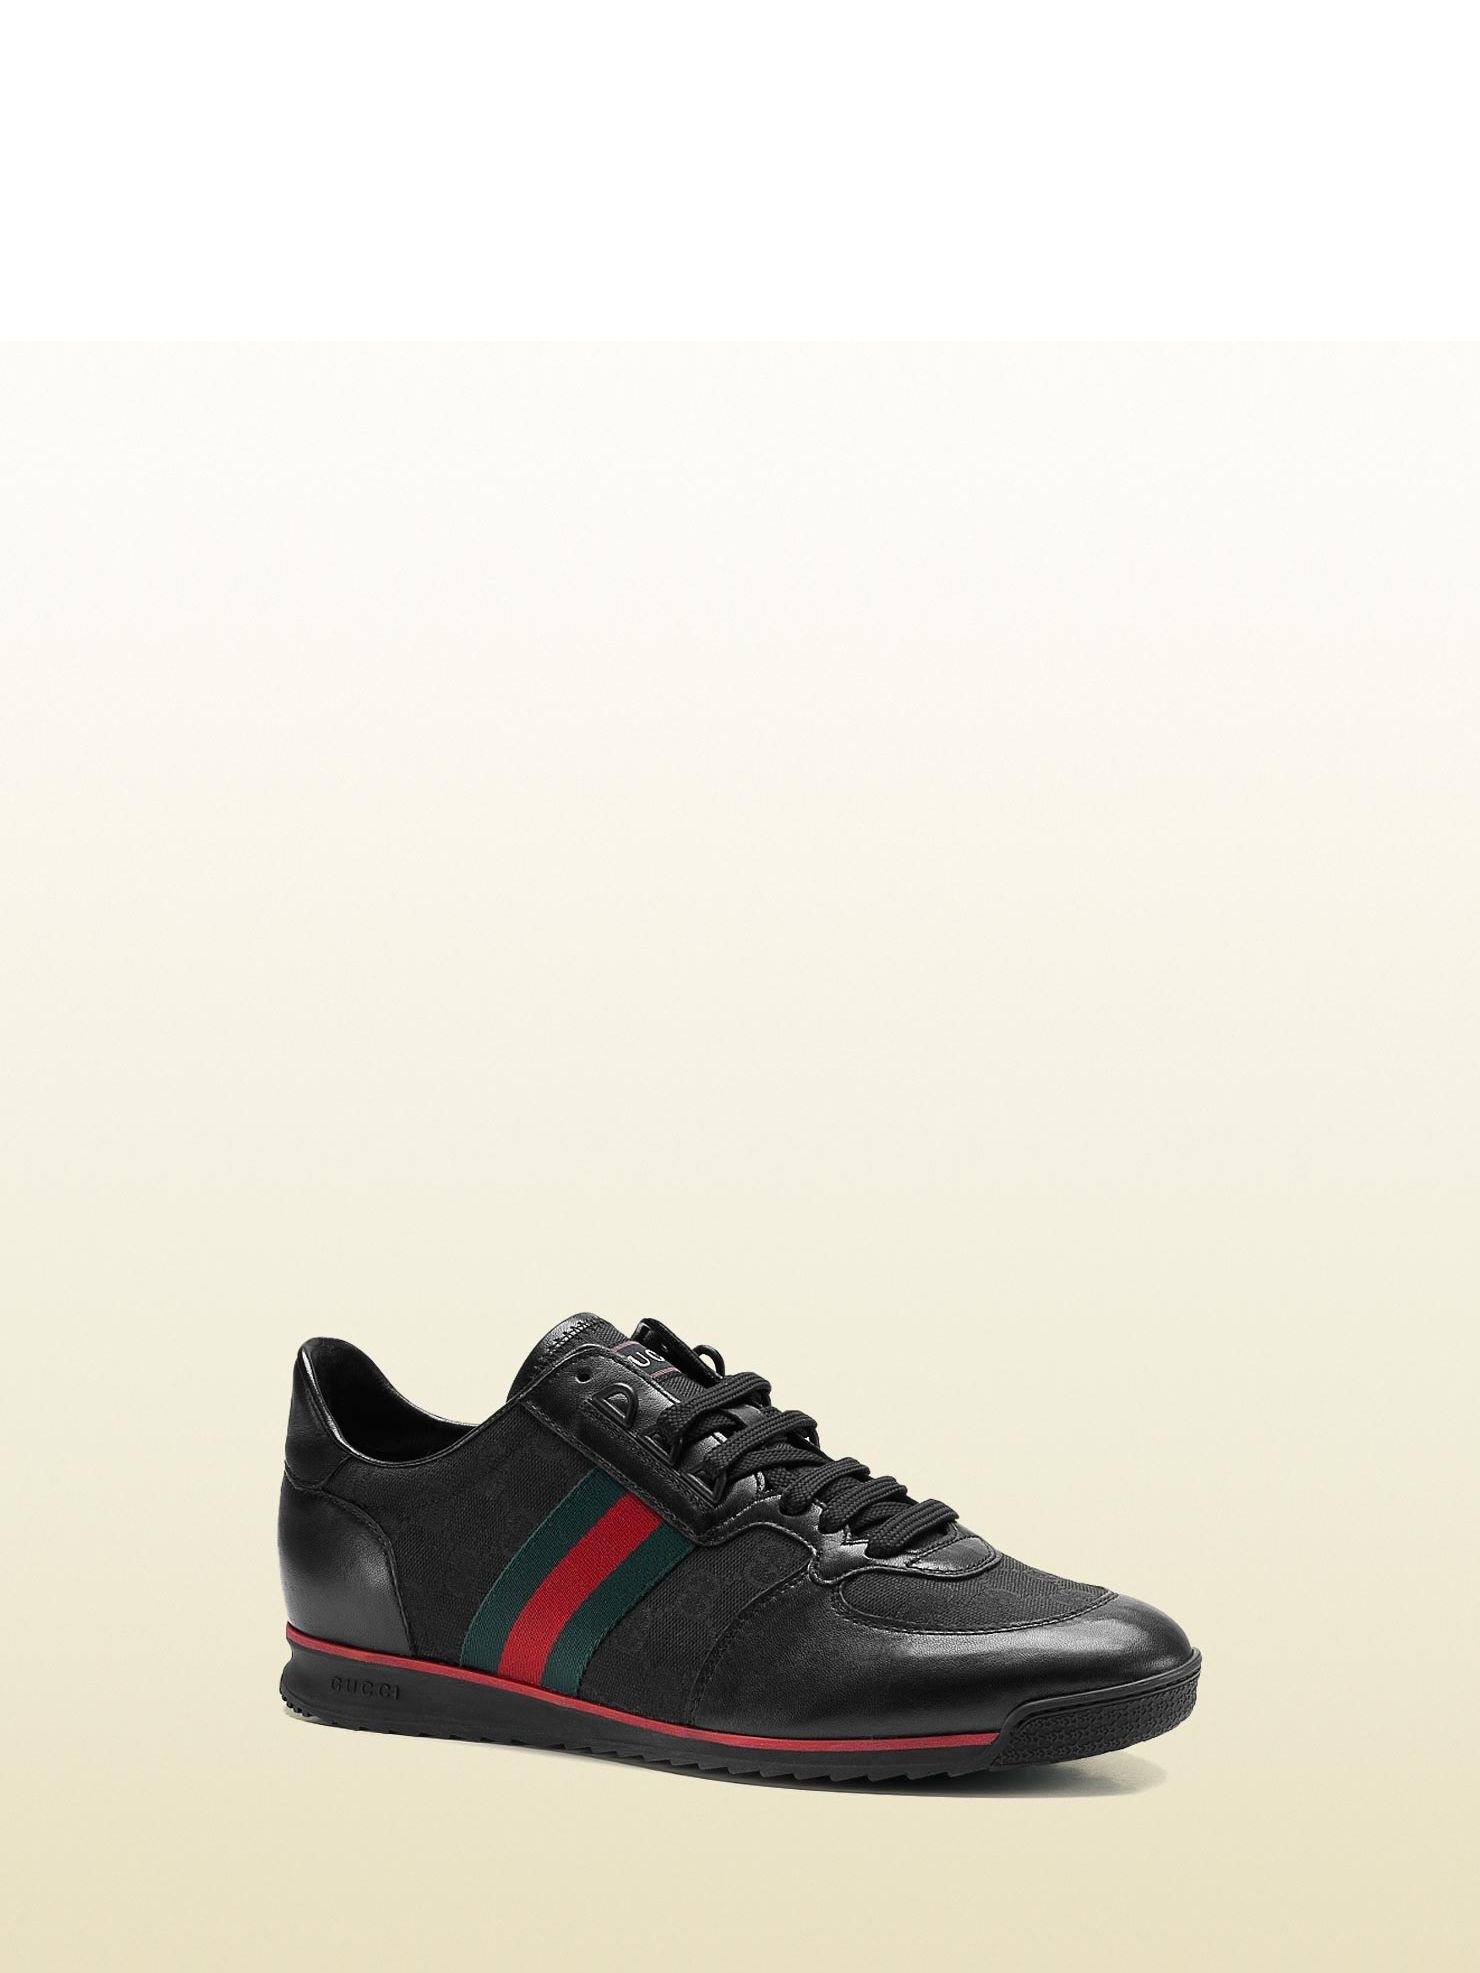 a526d5e211c Gucci - 237715 BDDX0 1060 - lace-up sneaker with signature web detail. -  black original GG fabric with black leather trim and green red green  signature ...